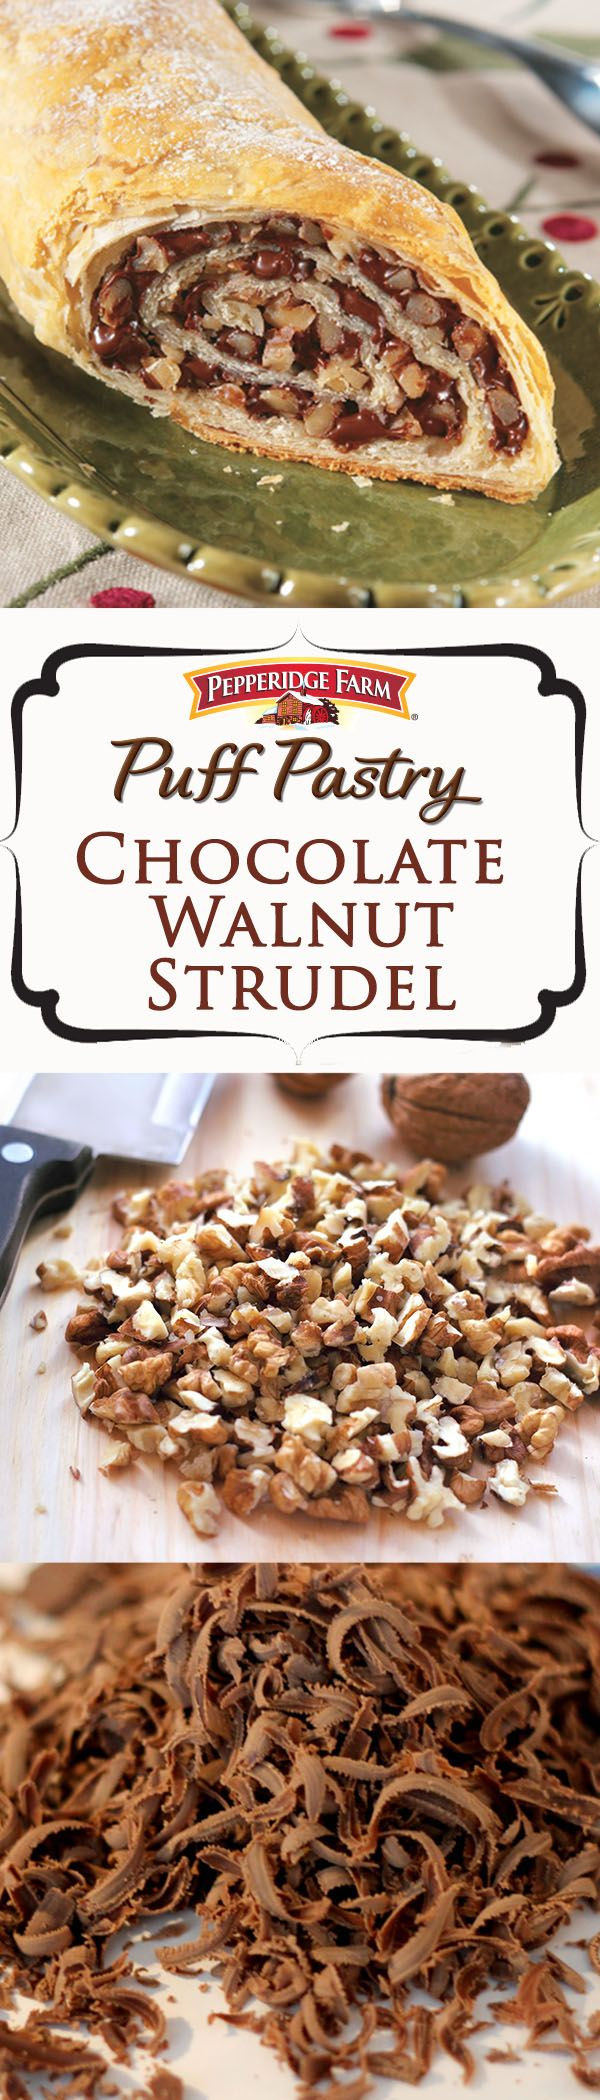 Chocolate Walnut Strudel Recipe.  This exquisite holiday dessert features a luscious chocolate and walnut filling, rolled up in golden Puff Pastry. Recipe also includes some simple (yet impressive!) decorating tips. It's the perfect choice when hosting a holiday party or attending a holiday potluck.   http://www.puffpastry.com/recipe/23999/chocolate-walnut-strudel